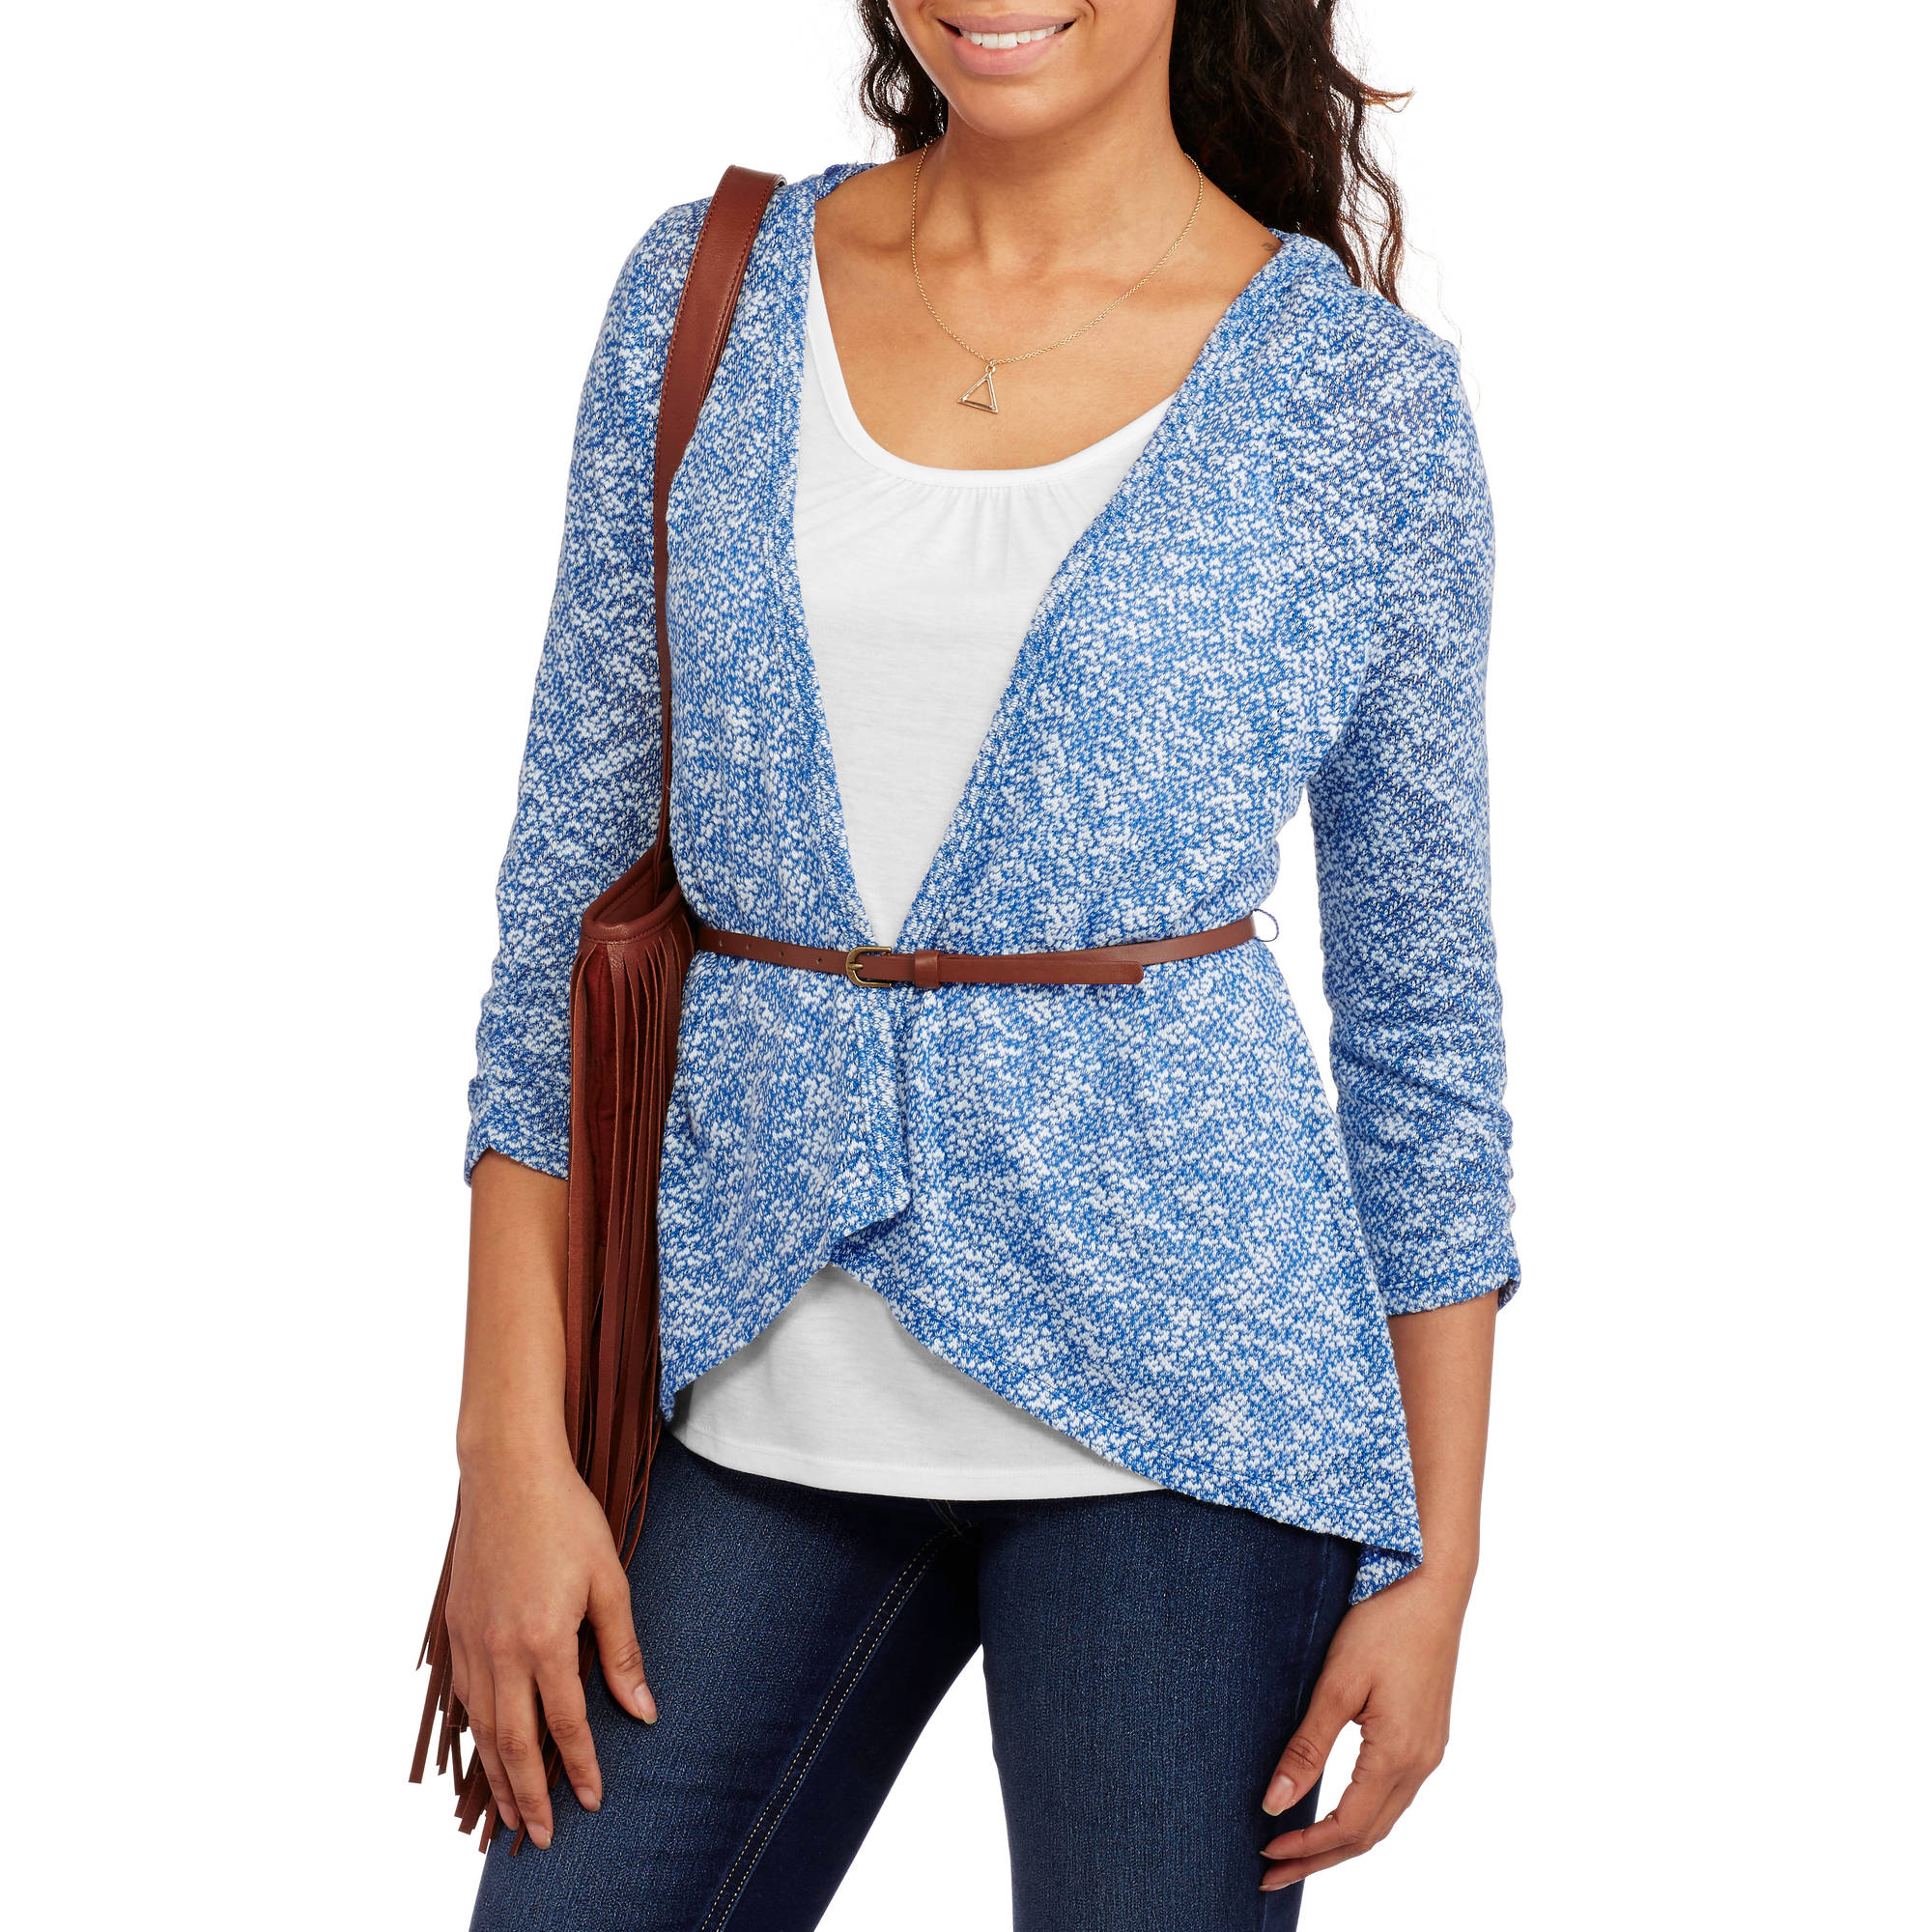 No Boundaries Juniors Tank, Cardigan, & Belt 3-Fer